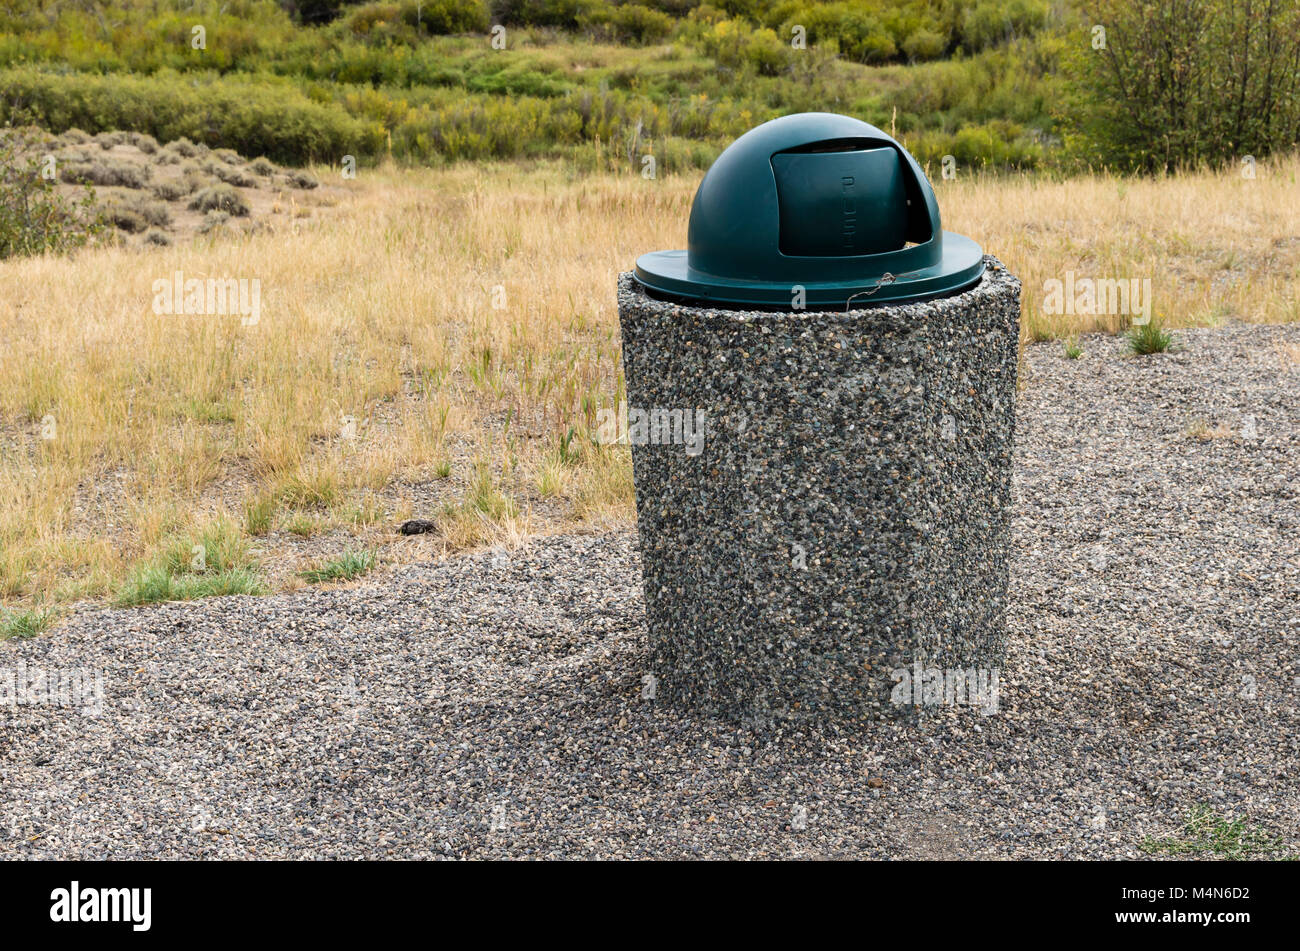 Covered trash can or garbage can at a rural roadside rest stop. - Stock Image